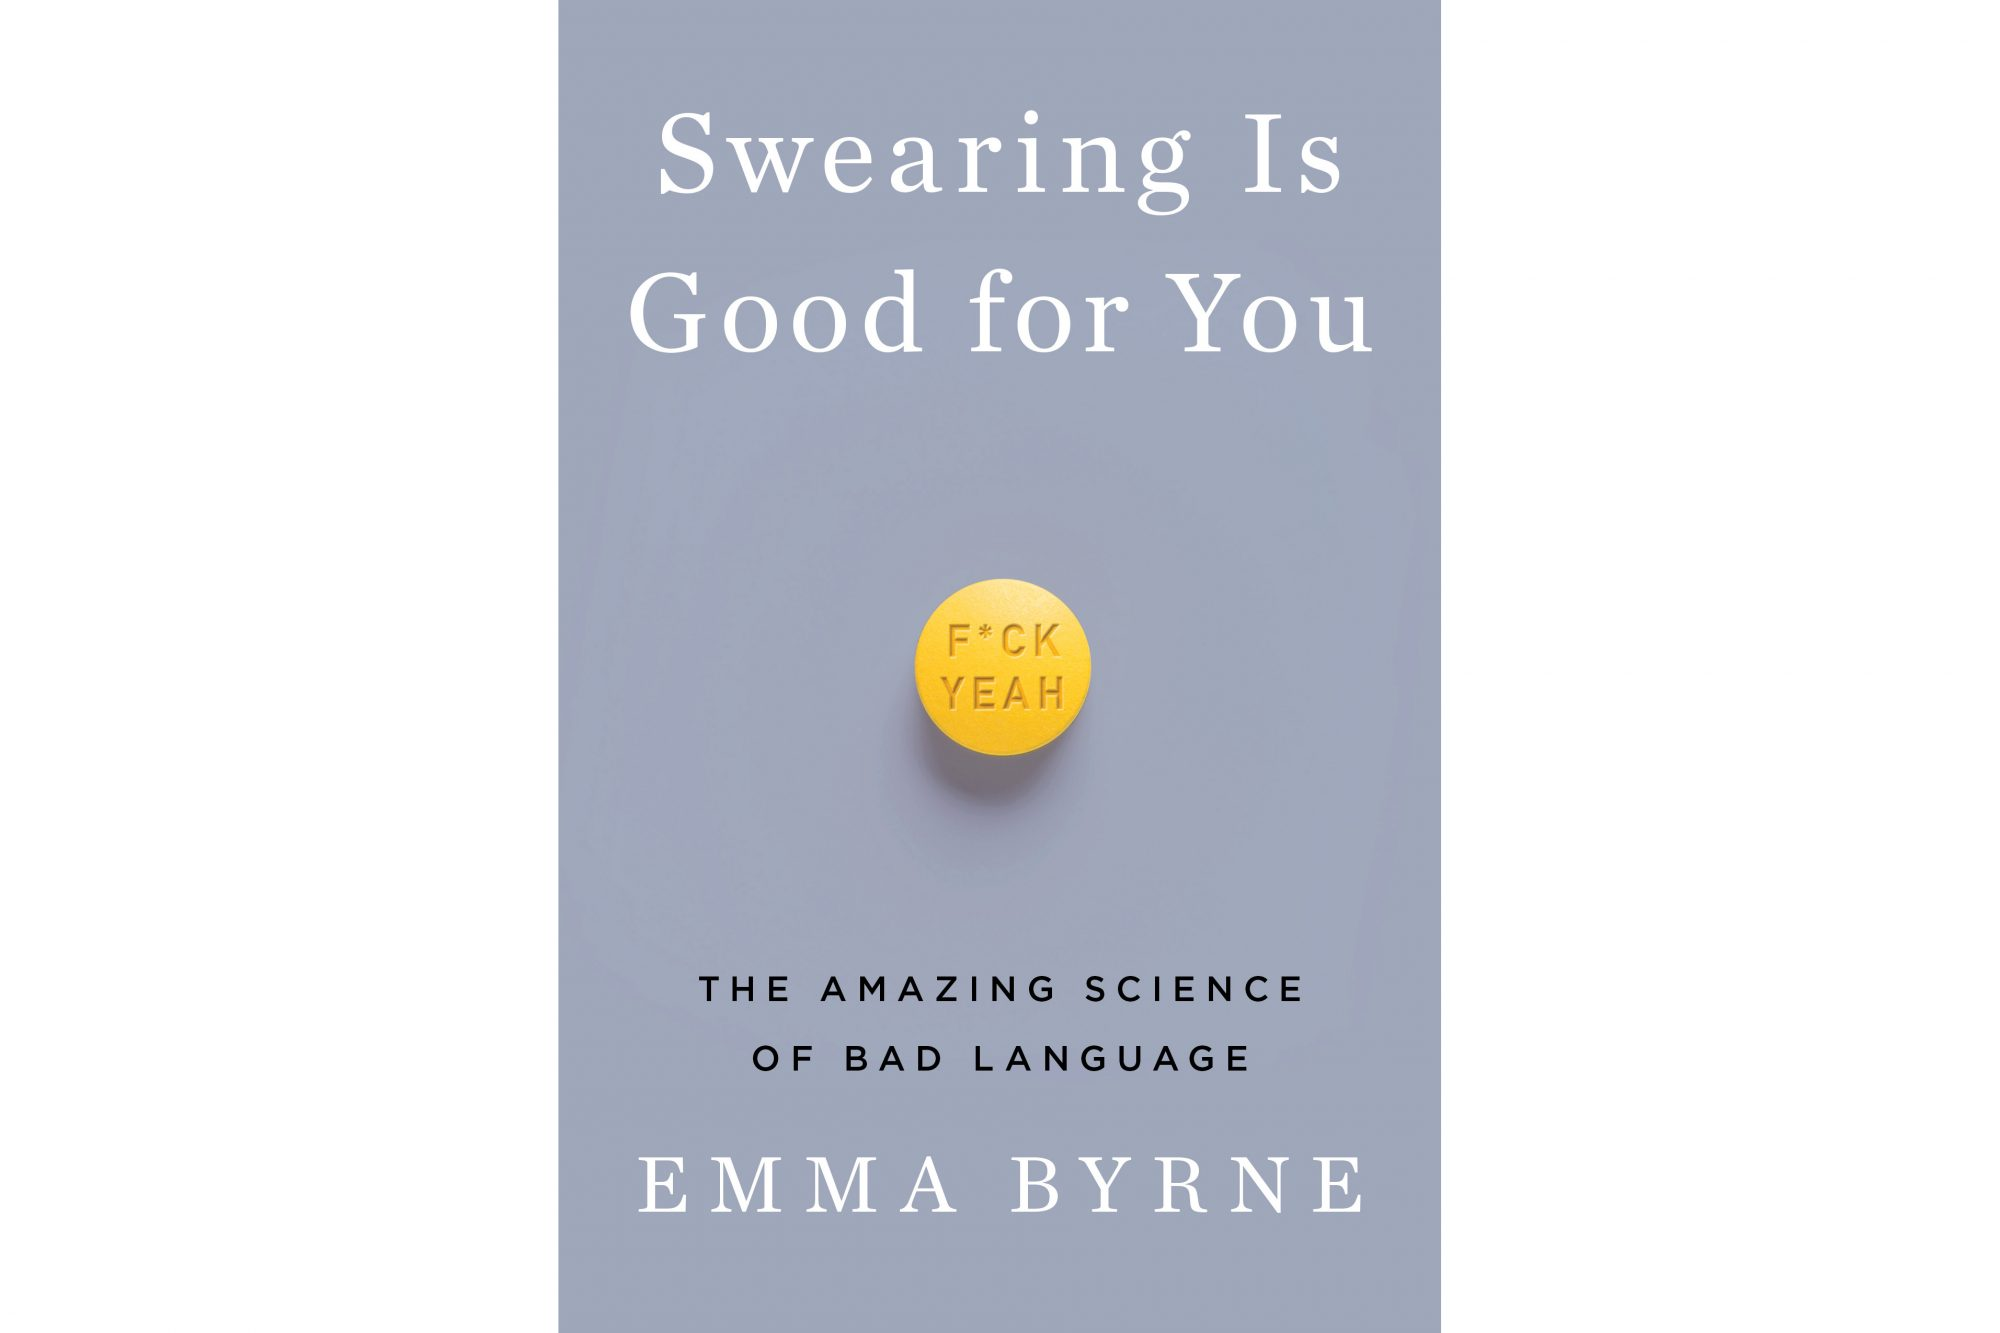 Swearing Is Good for You, by Emma Byrne